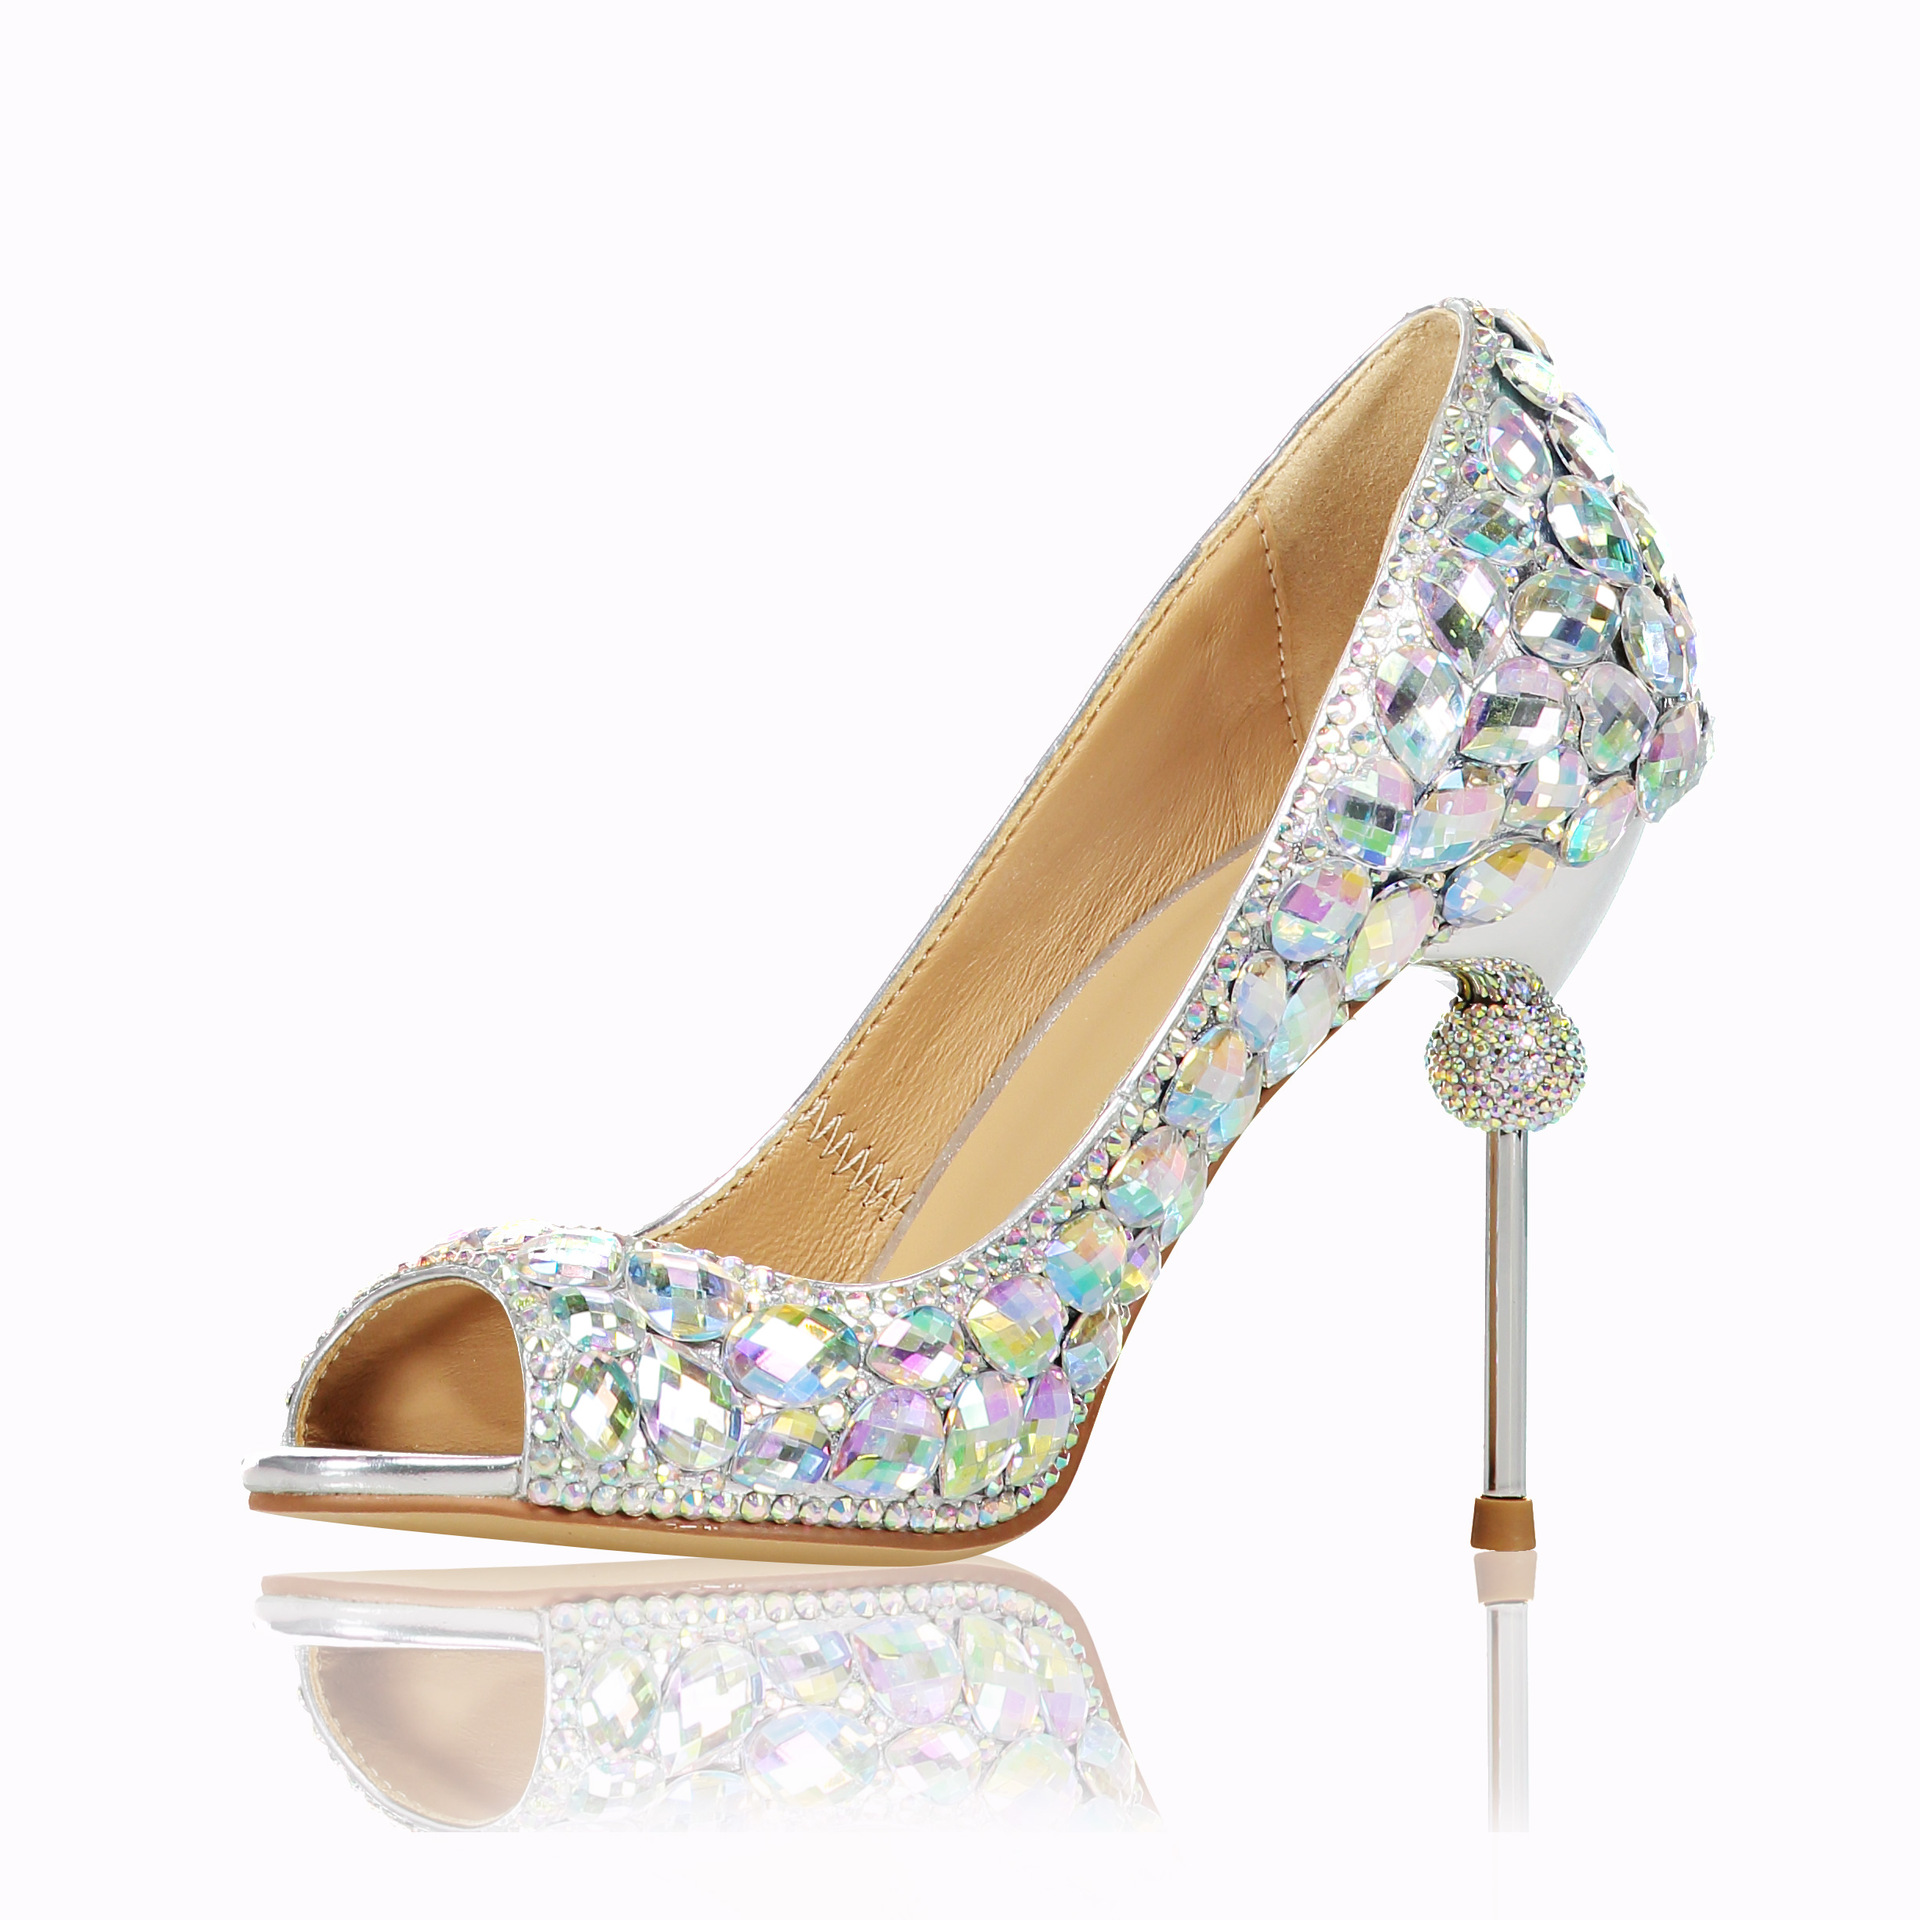 ACILICI0406 Temperament Luxury Glass Water Drill Color Diamond Fish Mouth Fine-heeled Fine Wedding Shoes  Women SandalsACILICI0406 Temperament Luxury Glass Water Drill Color Diamond Fish Mouth Fine-heeled Fine Wedding Shoes  Women Sandals